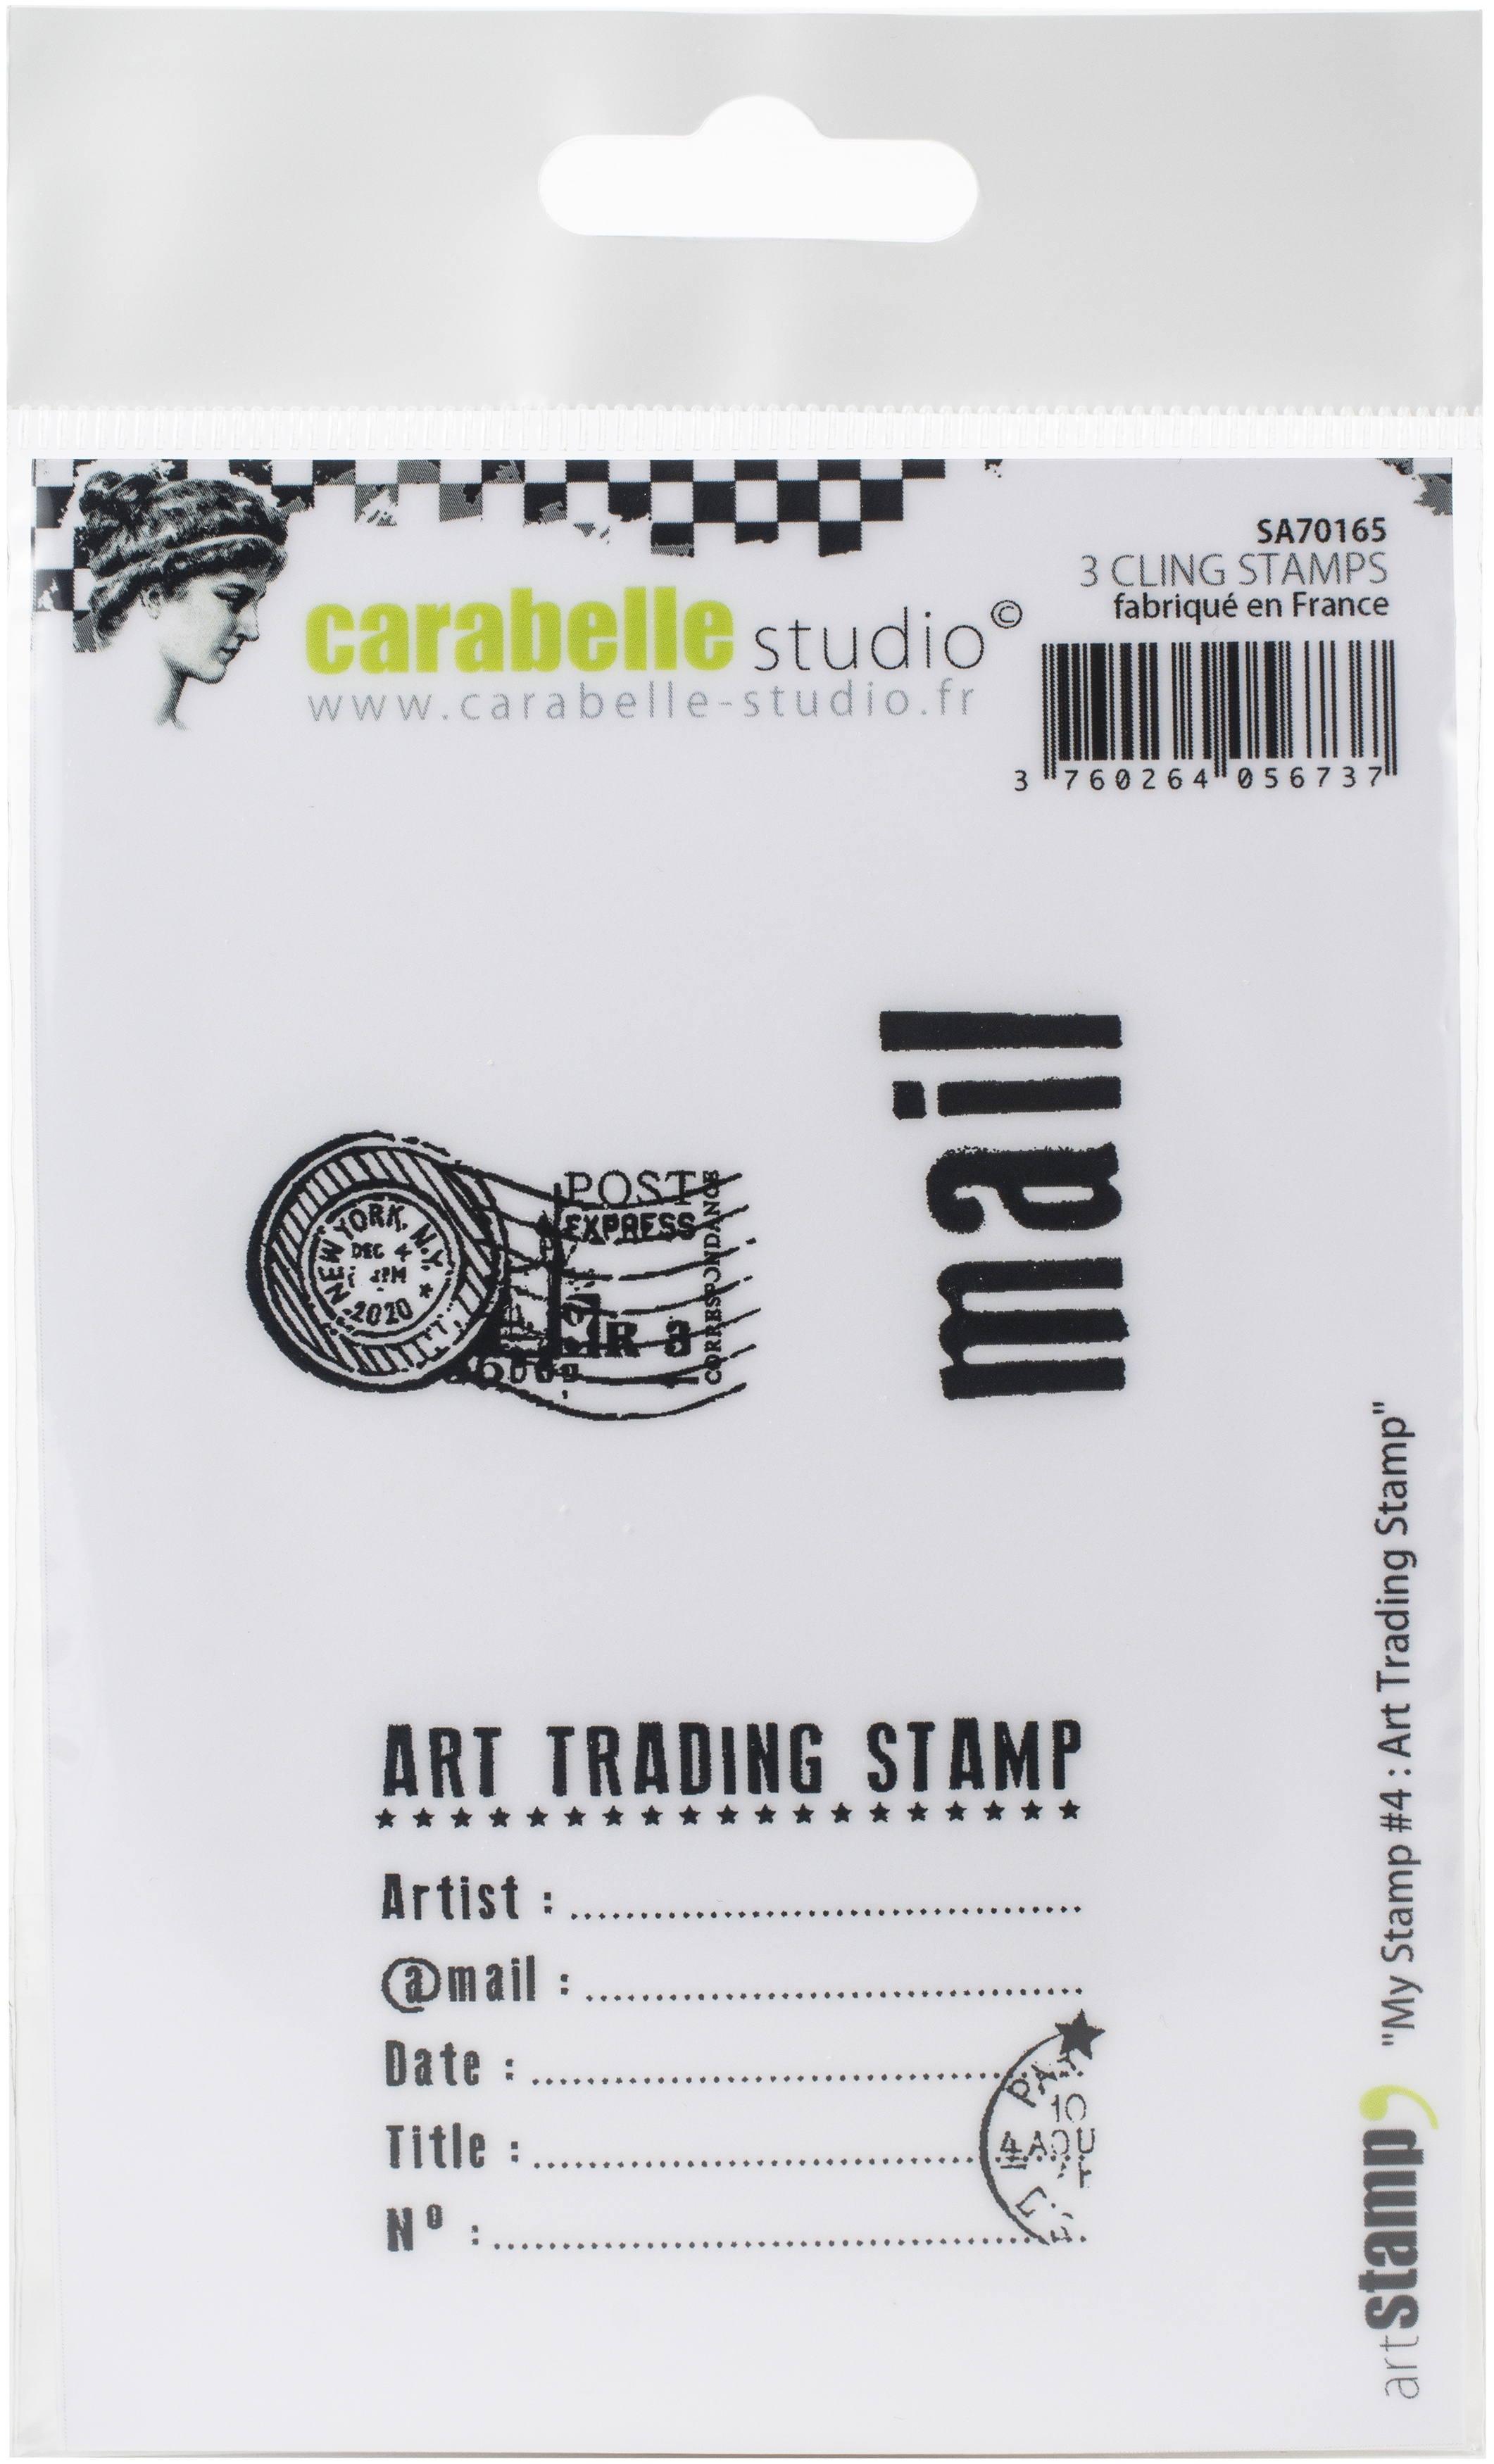 Carabelle Studio Cling Stamp A7-My Stamp #4: Art Trading Stamp